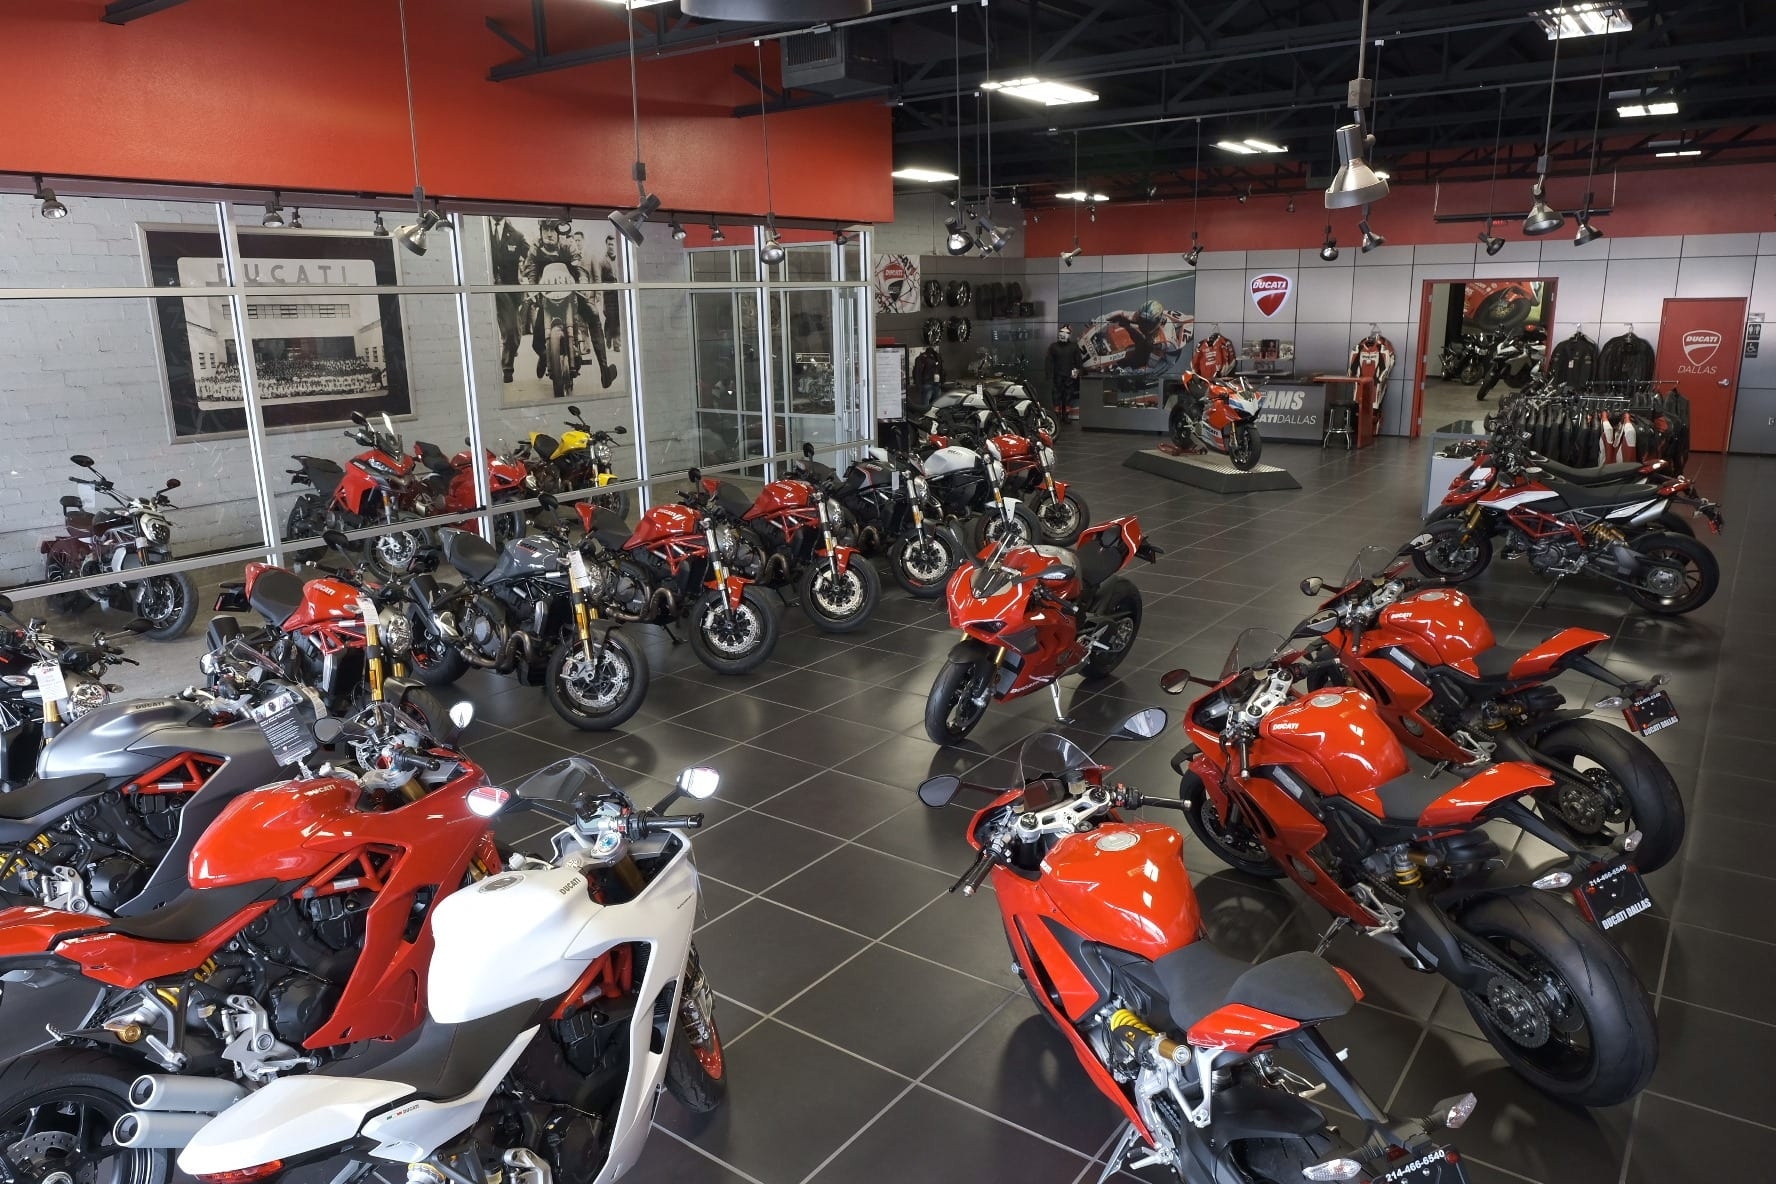 Motorcycle Sales Boom despite pandemic